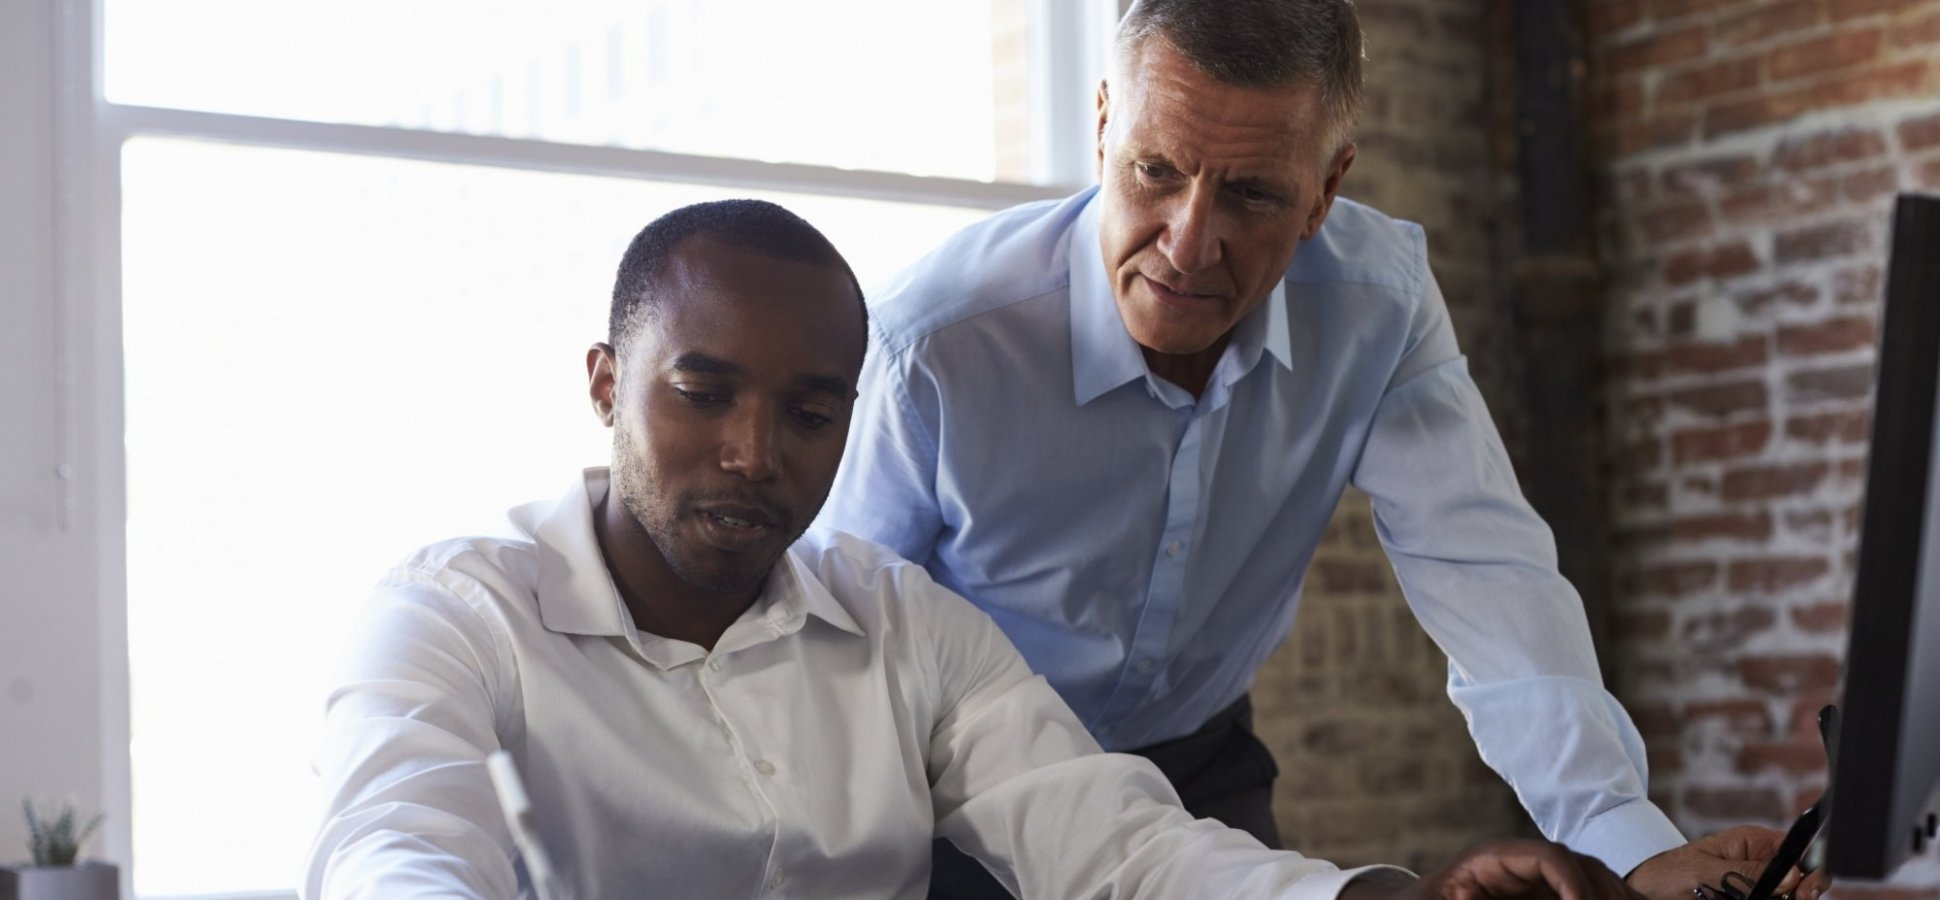 4 Ways to Find Mentorship (and Why It's Critical to Your Startup's Success)